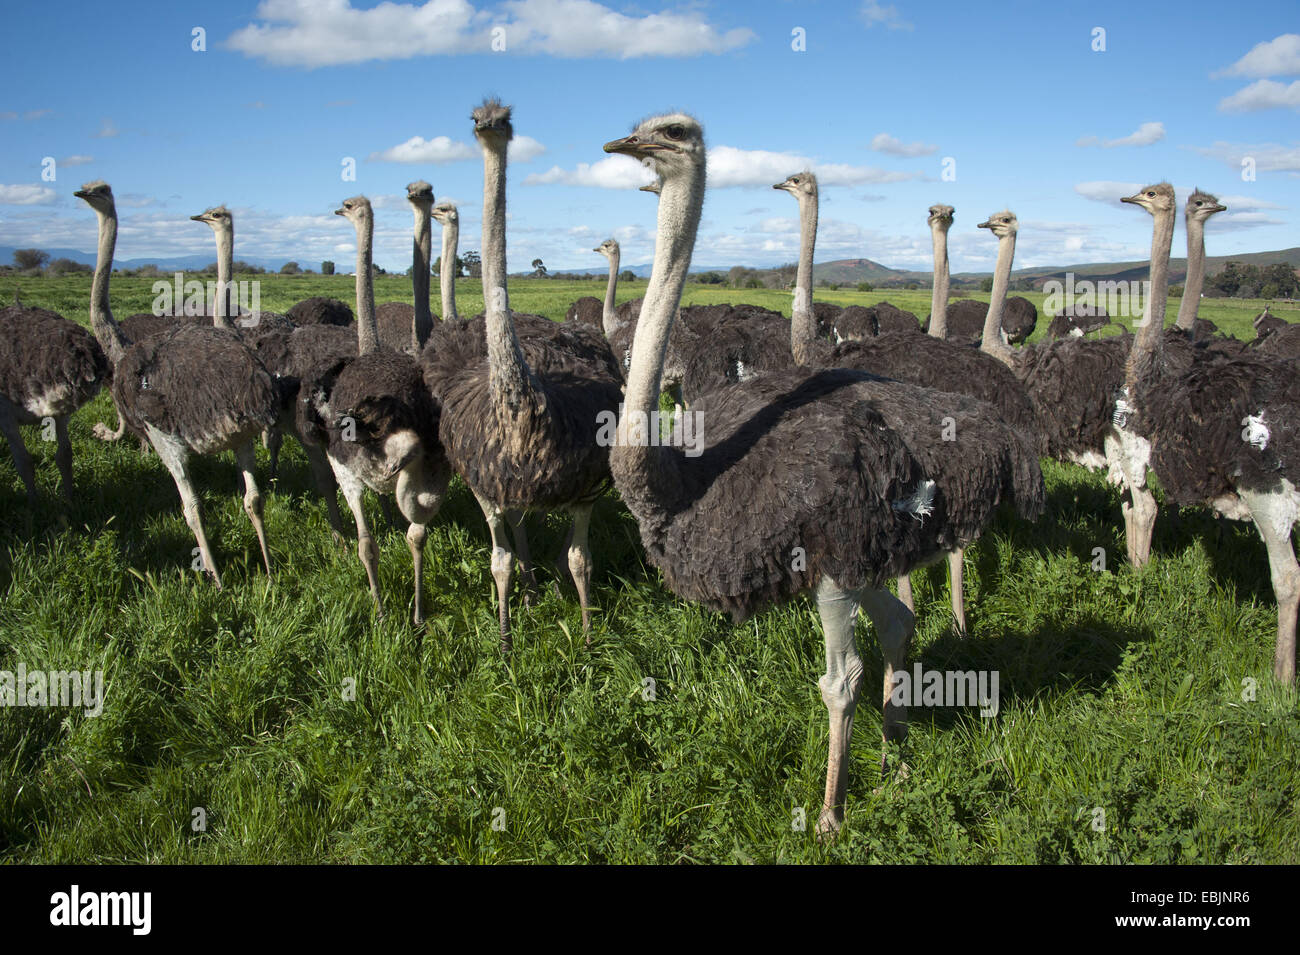 ostrich (Struthio camelus), flock of ostriches standing in meadow, South Africa, Western Cape, Oudtshoorn - Stock Image